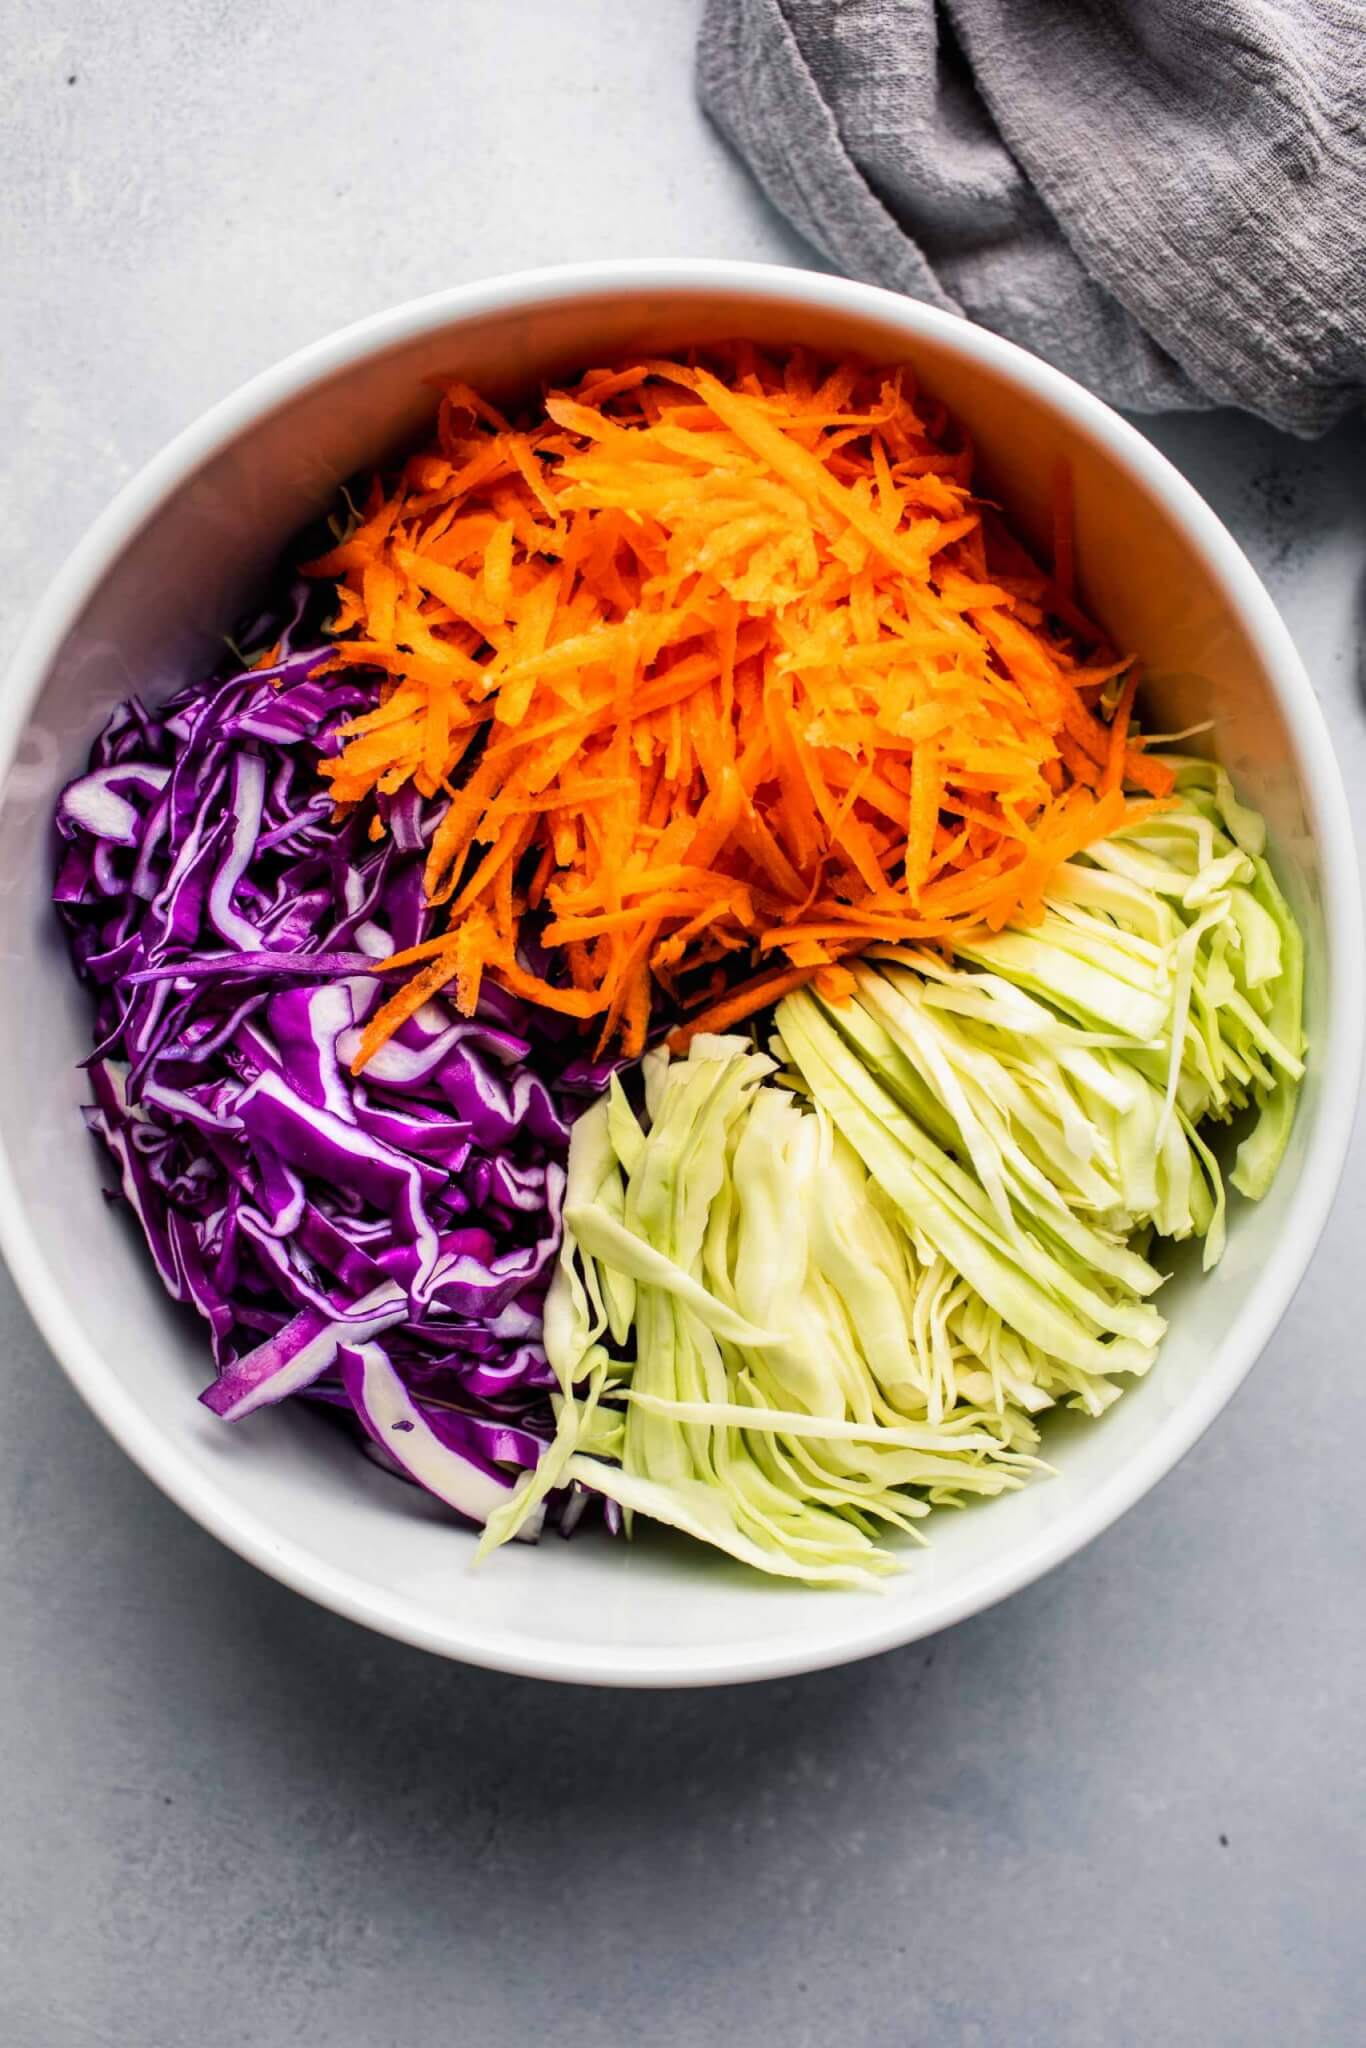 Shredded cabbage and carrots in large mixing bowl.